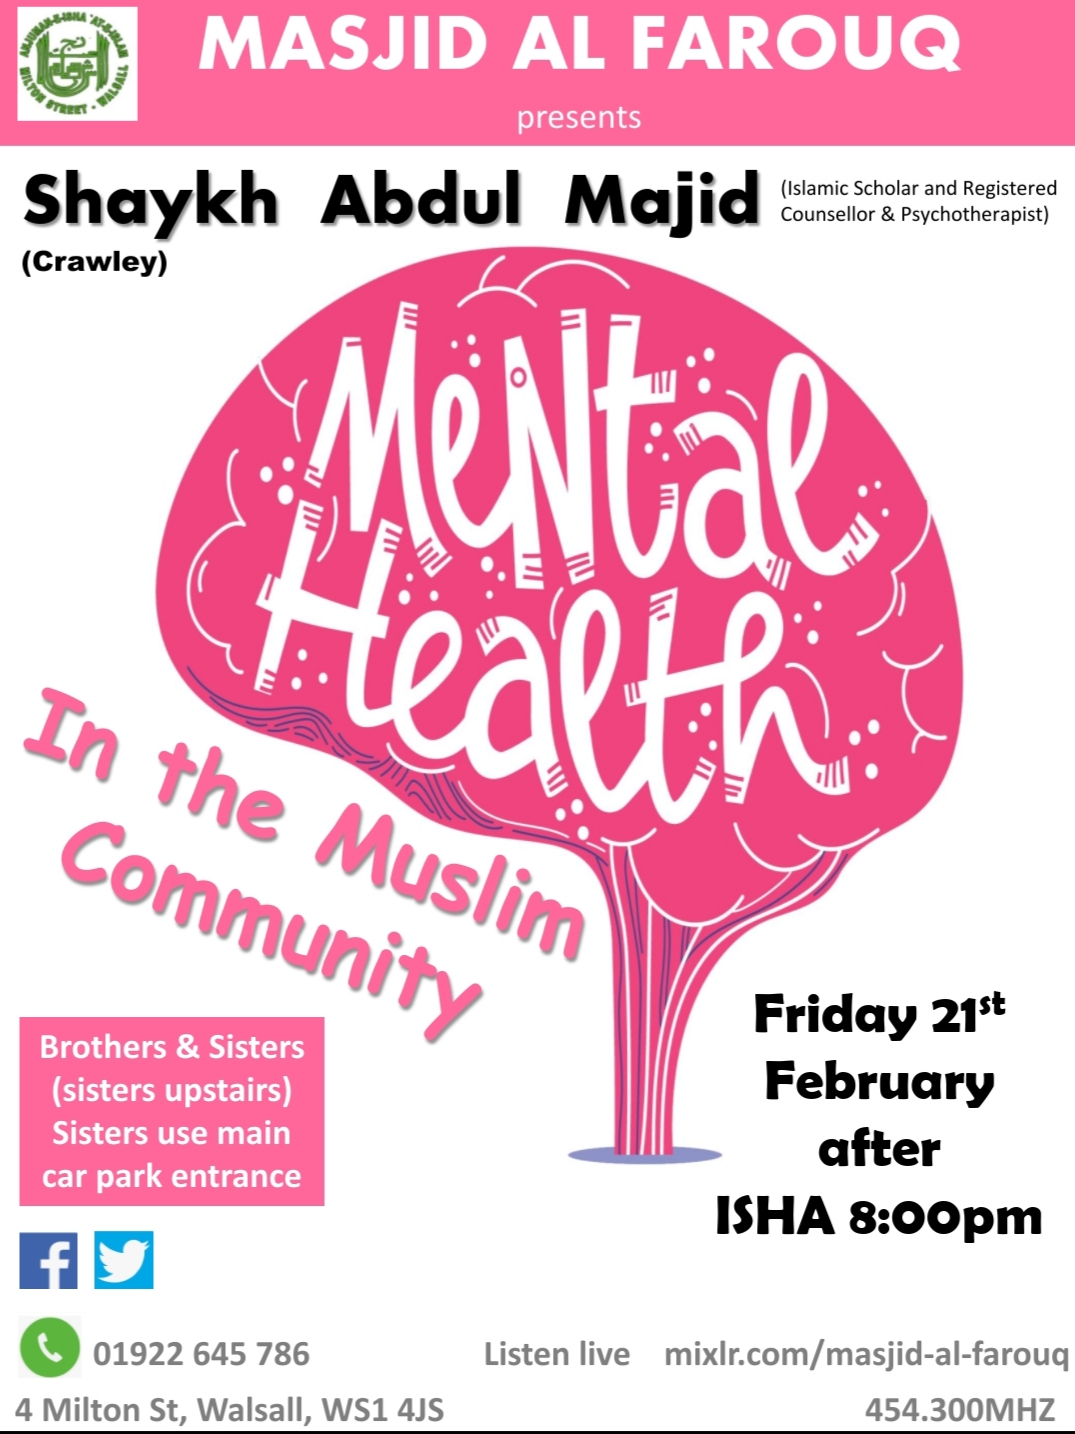 Mental Health - In the Muslim Community